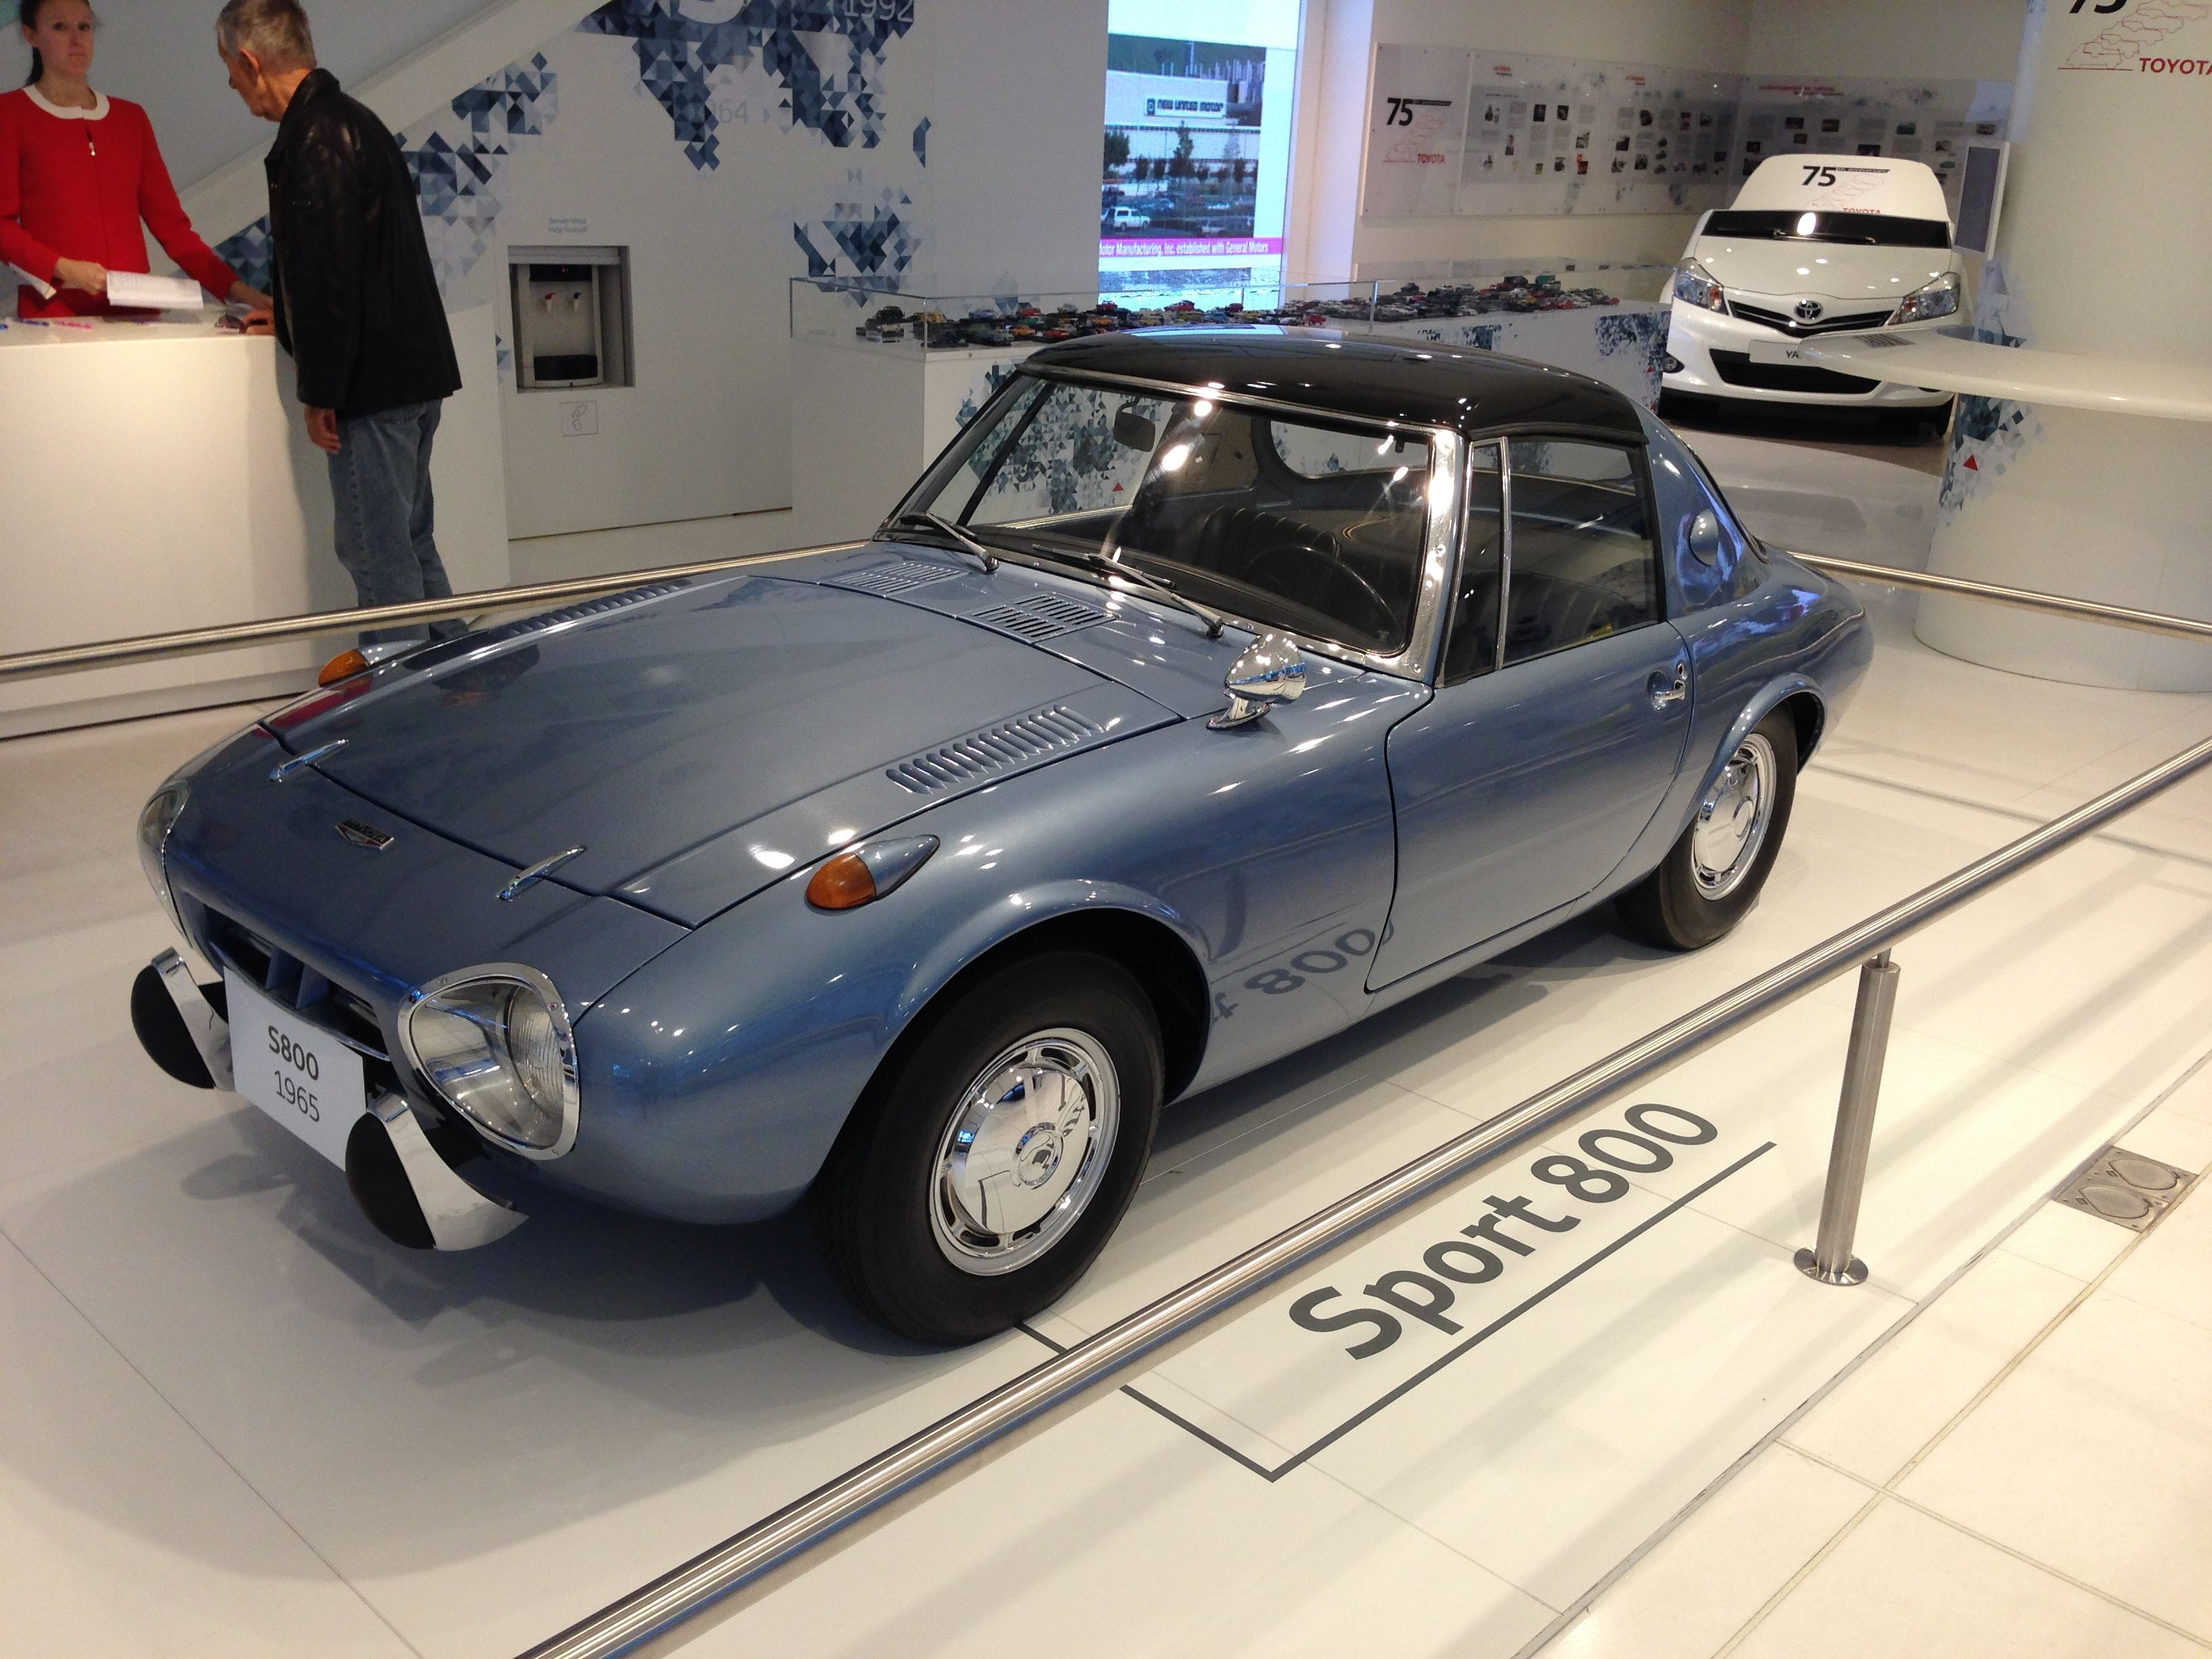 CarsBikesPhotography Music Car Vintage Toyota Sport 800 In Their Paris Showroom Celebrating 75 Years